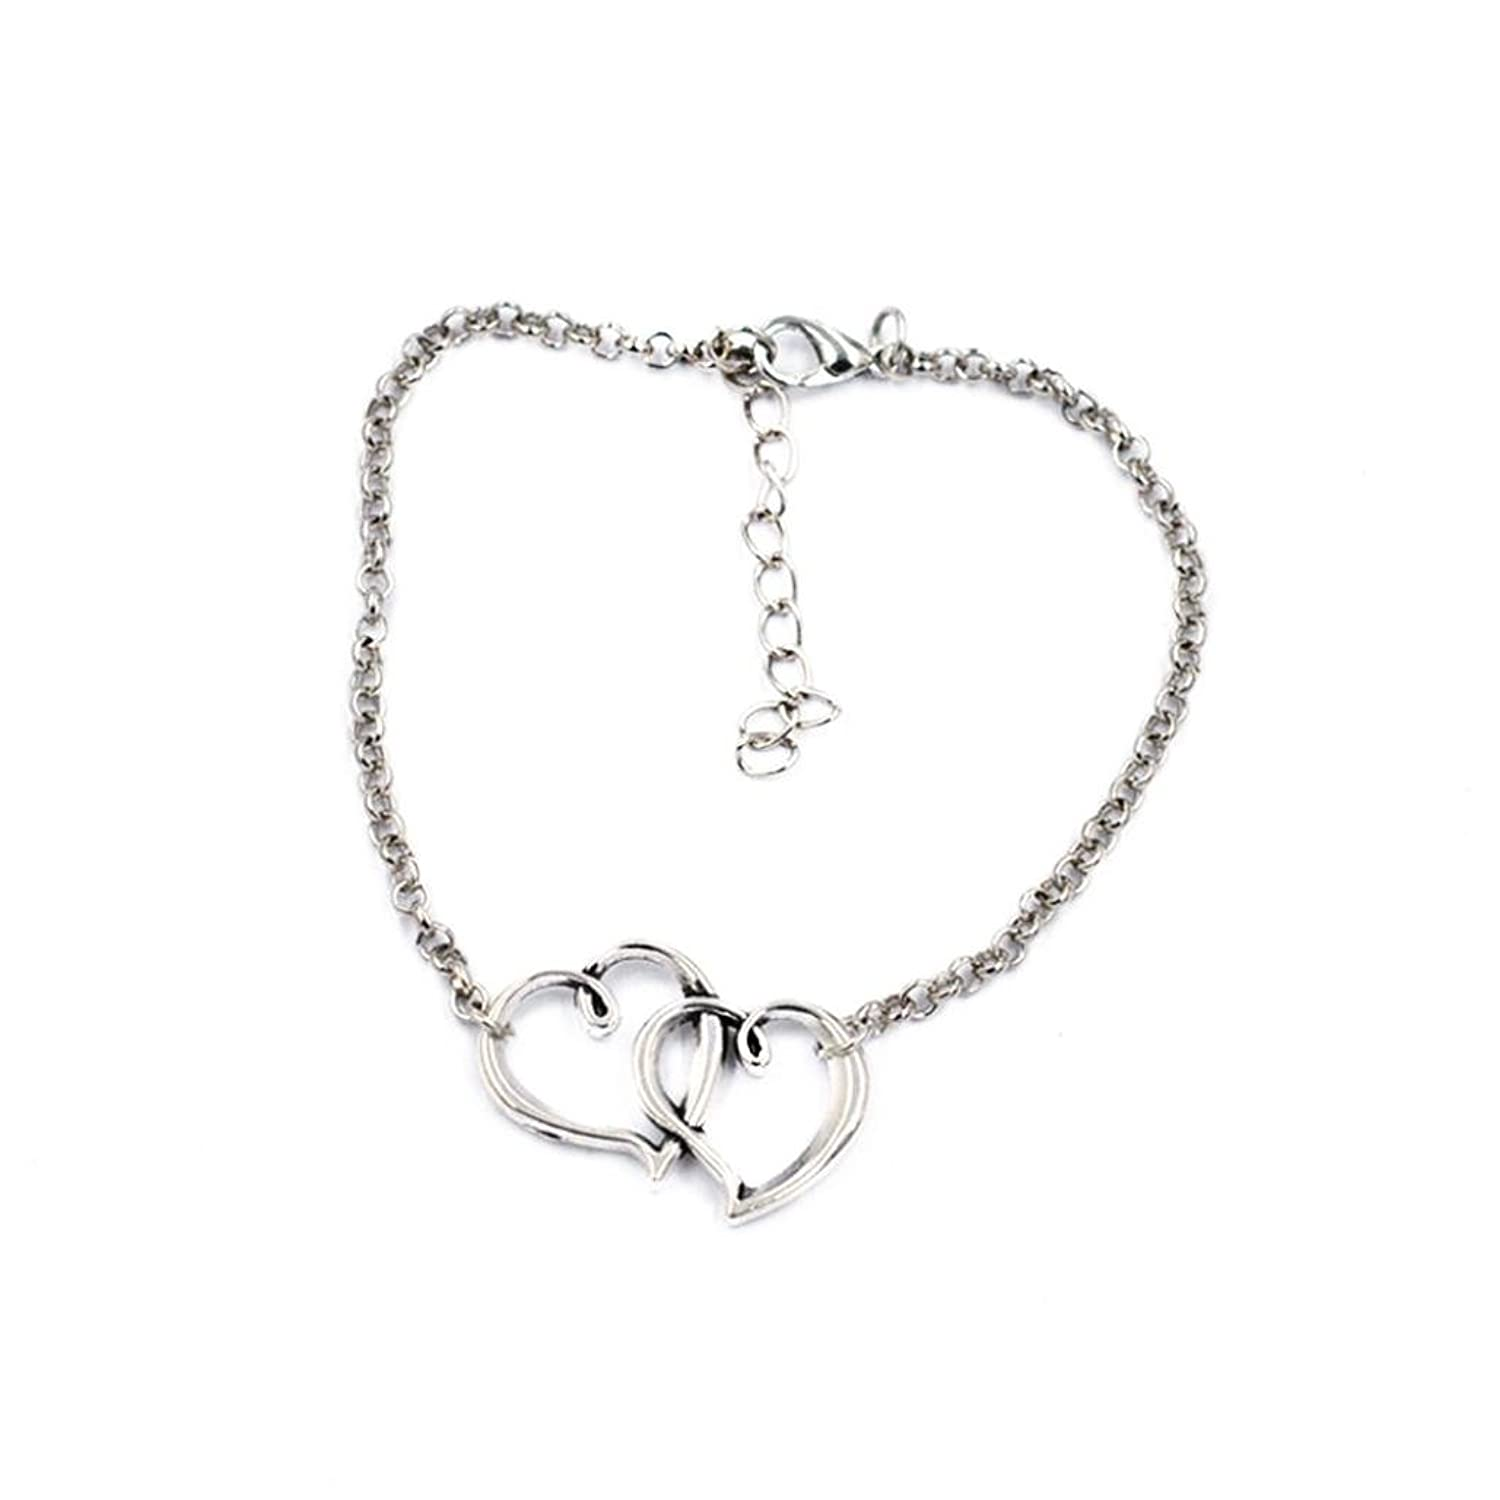 Necoip Double Heart Chain Beach Sexy Sandal Anklet Ankle Bracelet Jewelry